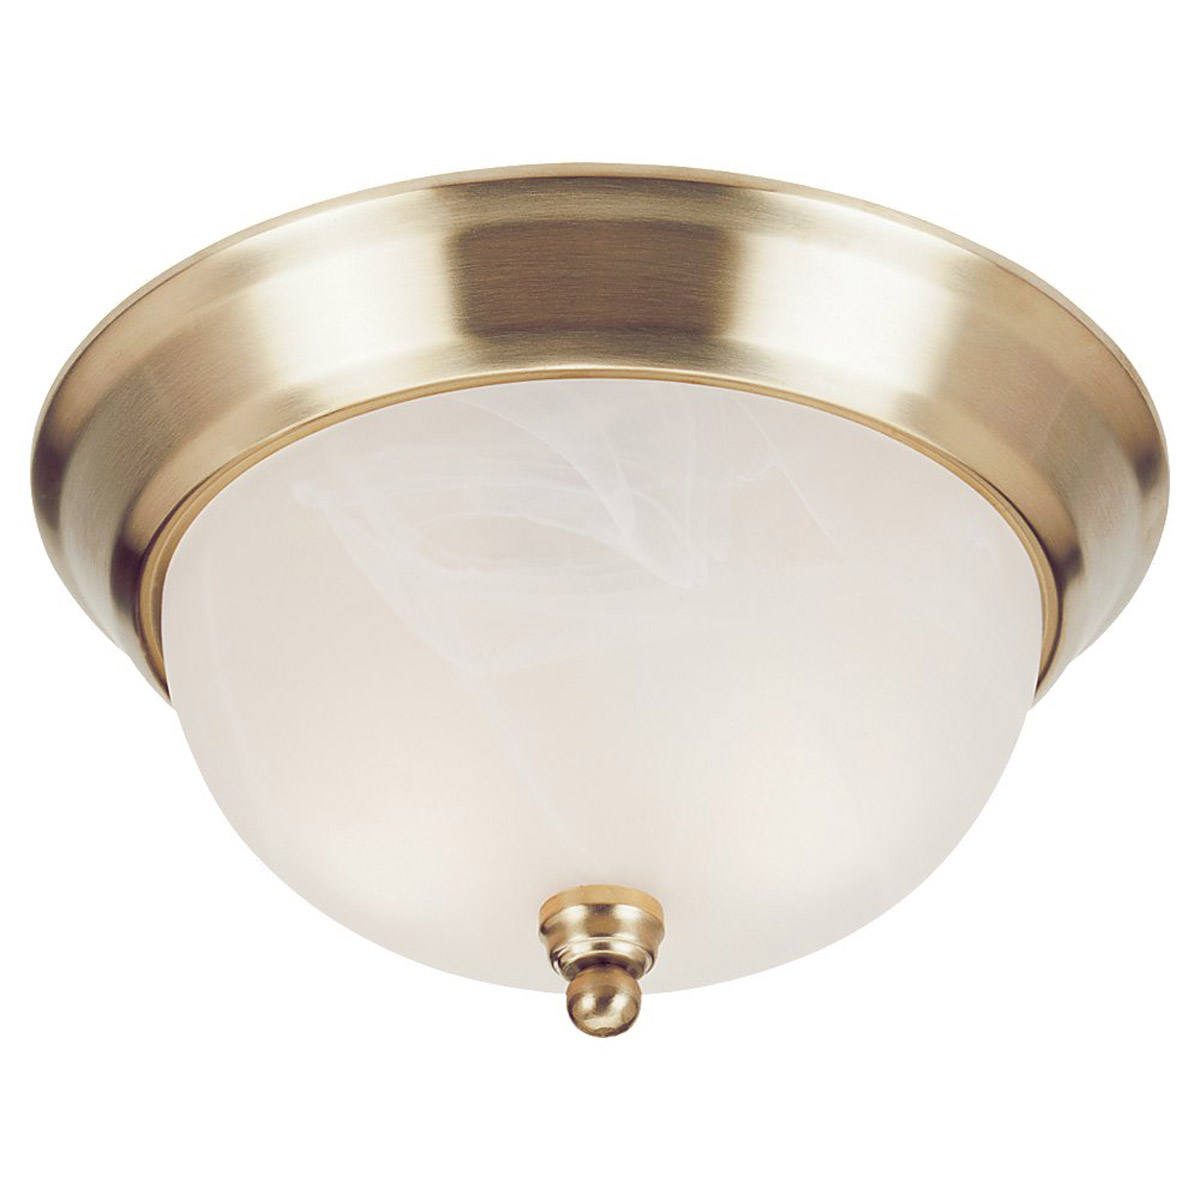 Sea Gull Lighting Landon 3 Light Fluorescent Flush Mount in Polished Brass 79242BLE-02 photo